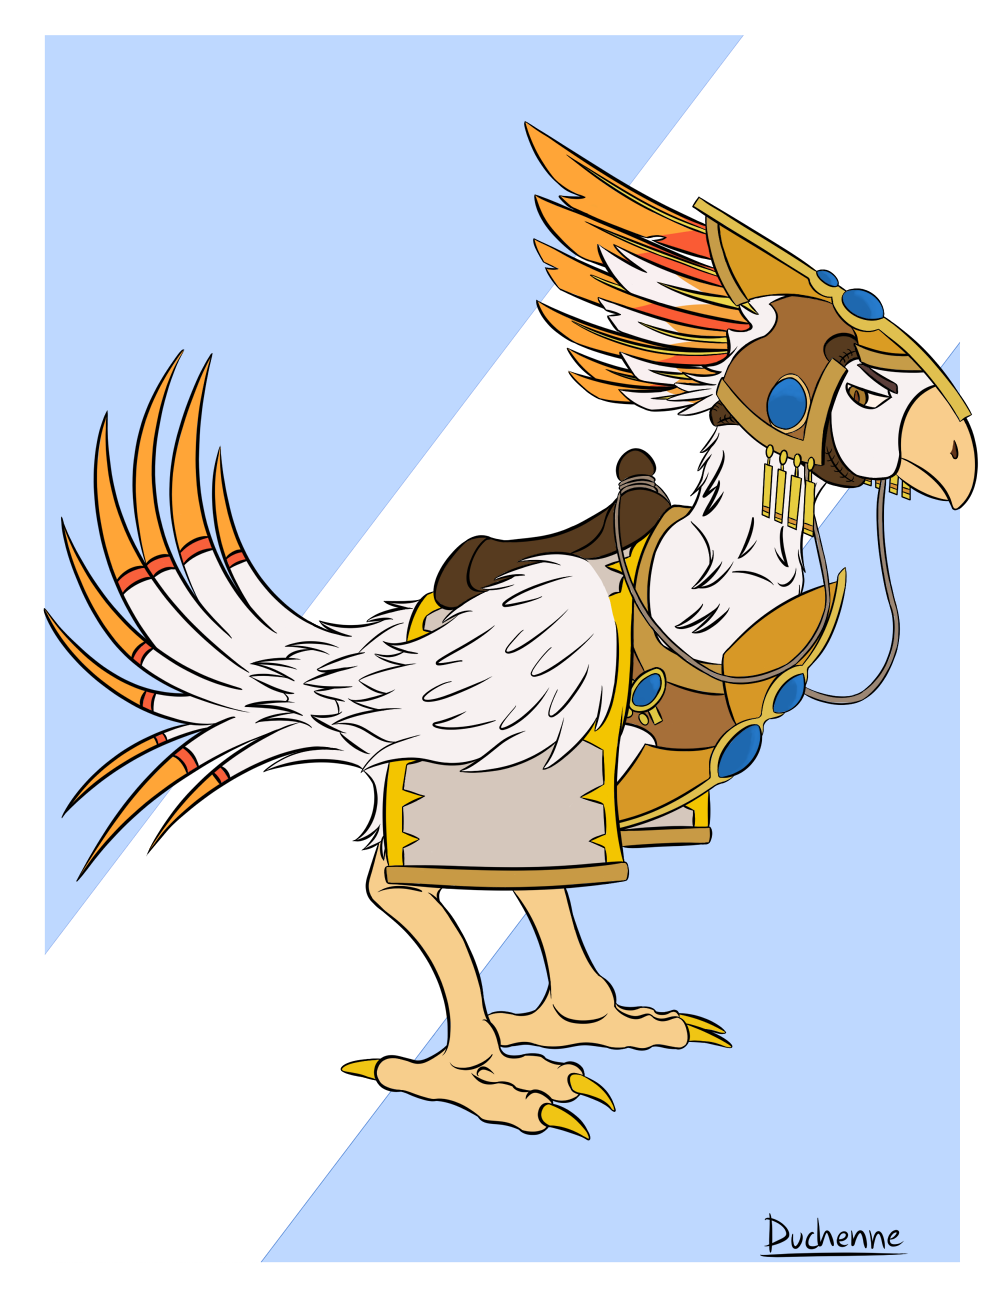 Most recent image: [Commission] Chocobo